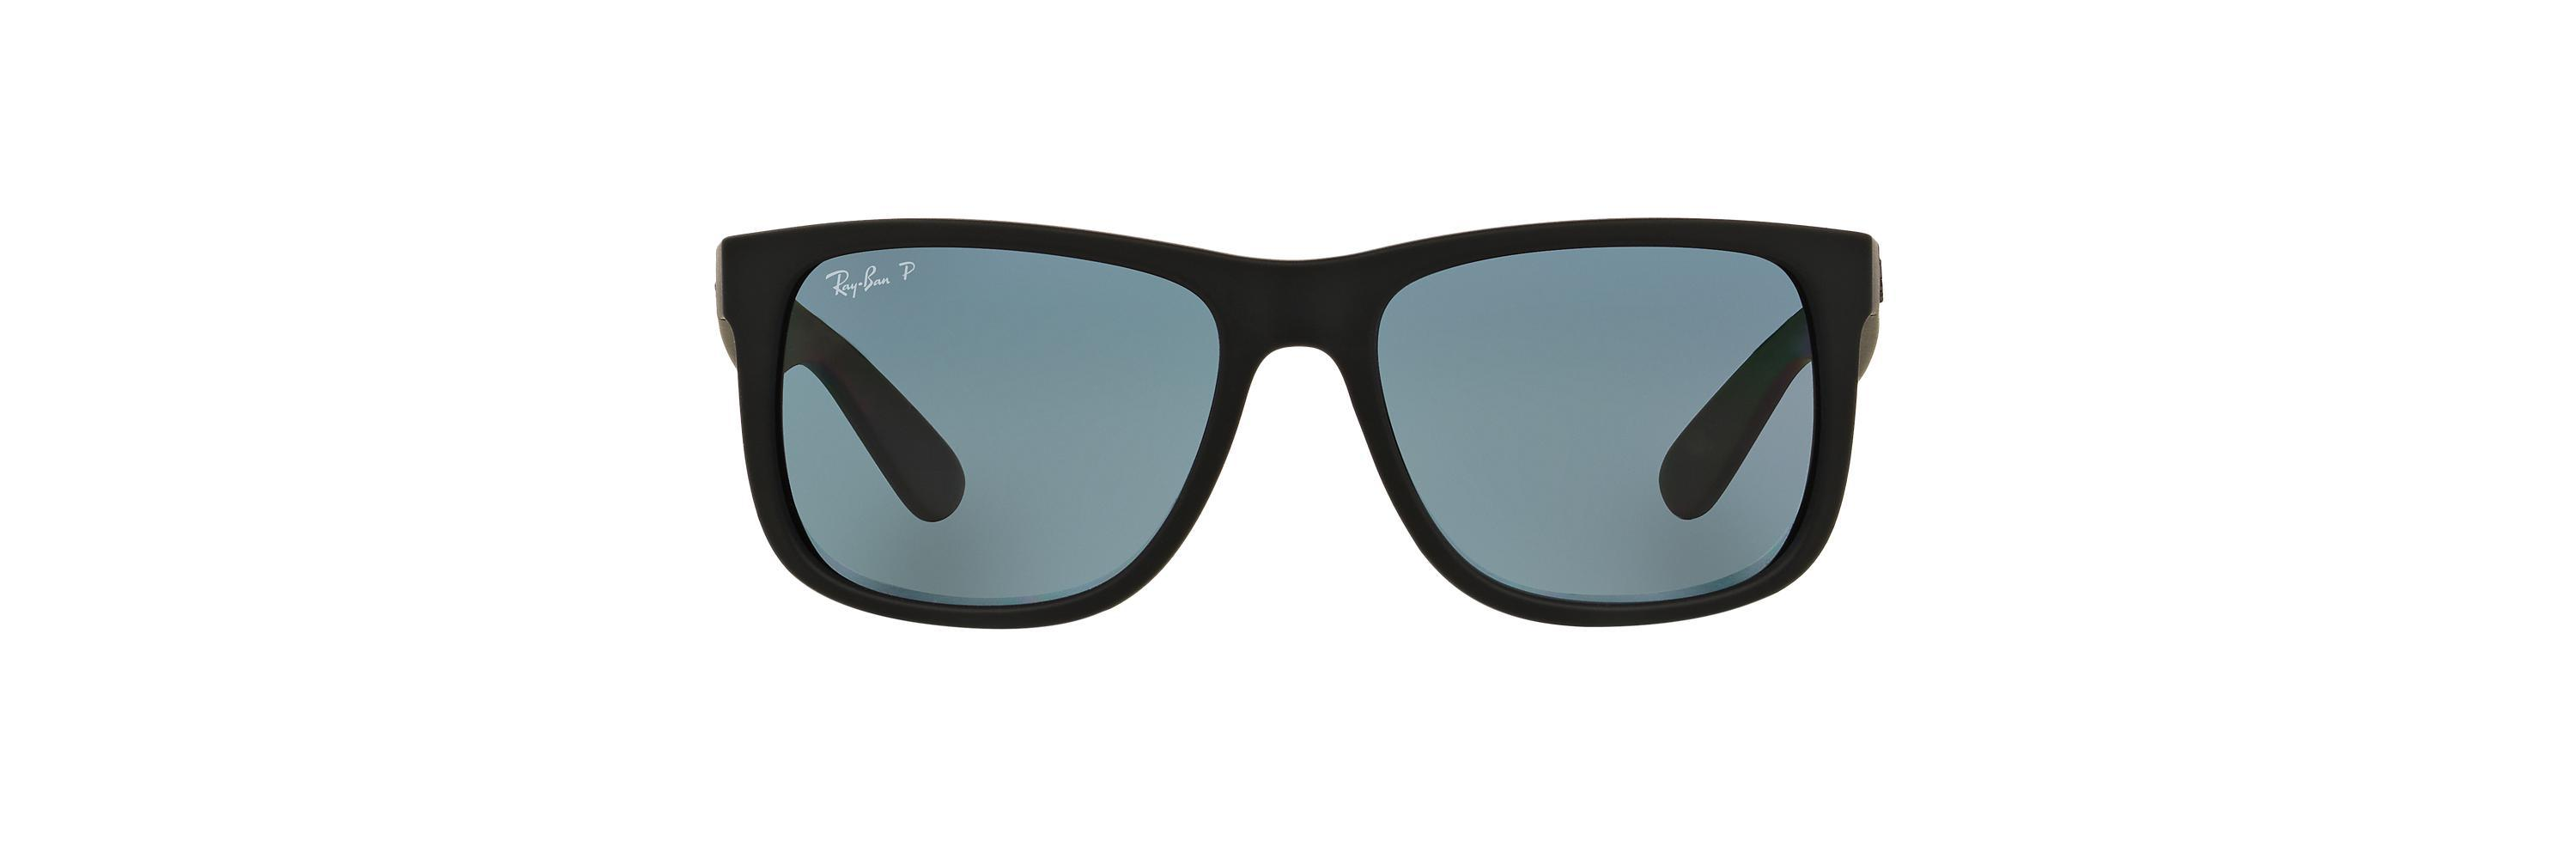 8a6e9509a9f Ray-Ban. Men s Black Rb4165 54 Justin.  163 From Sunglass Hut